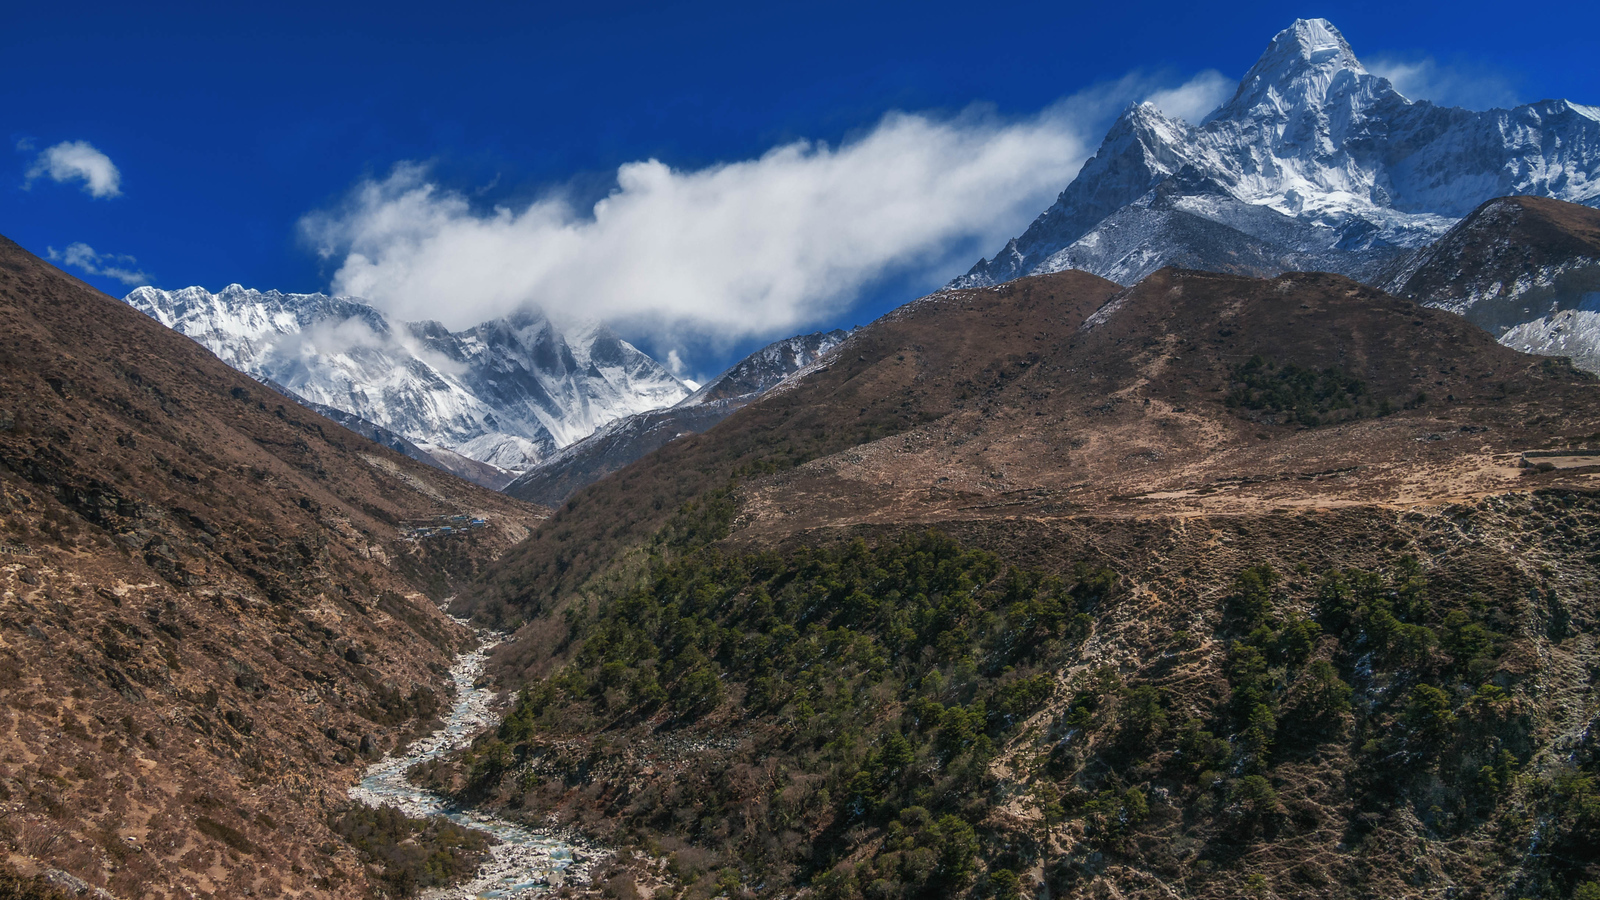 Rivers cut through the valley floor on the Mount Everest Base Camp Trek